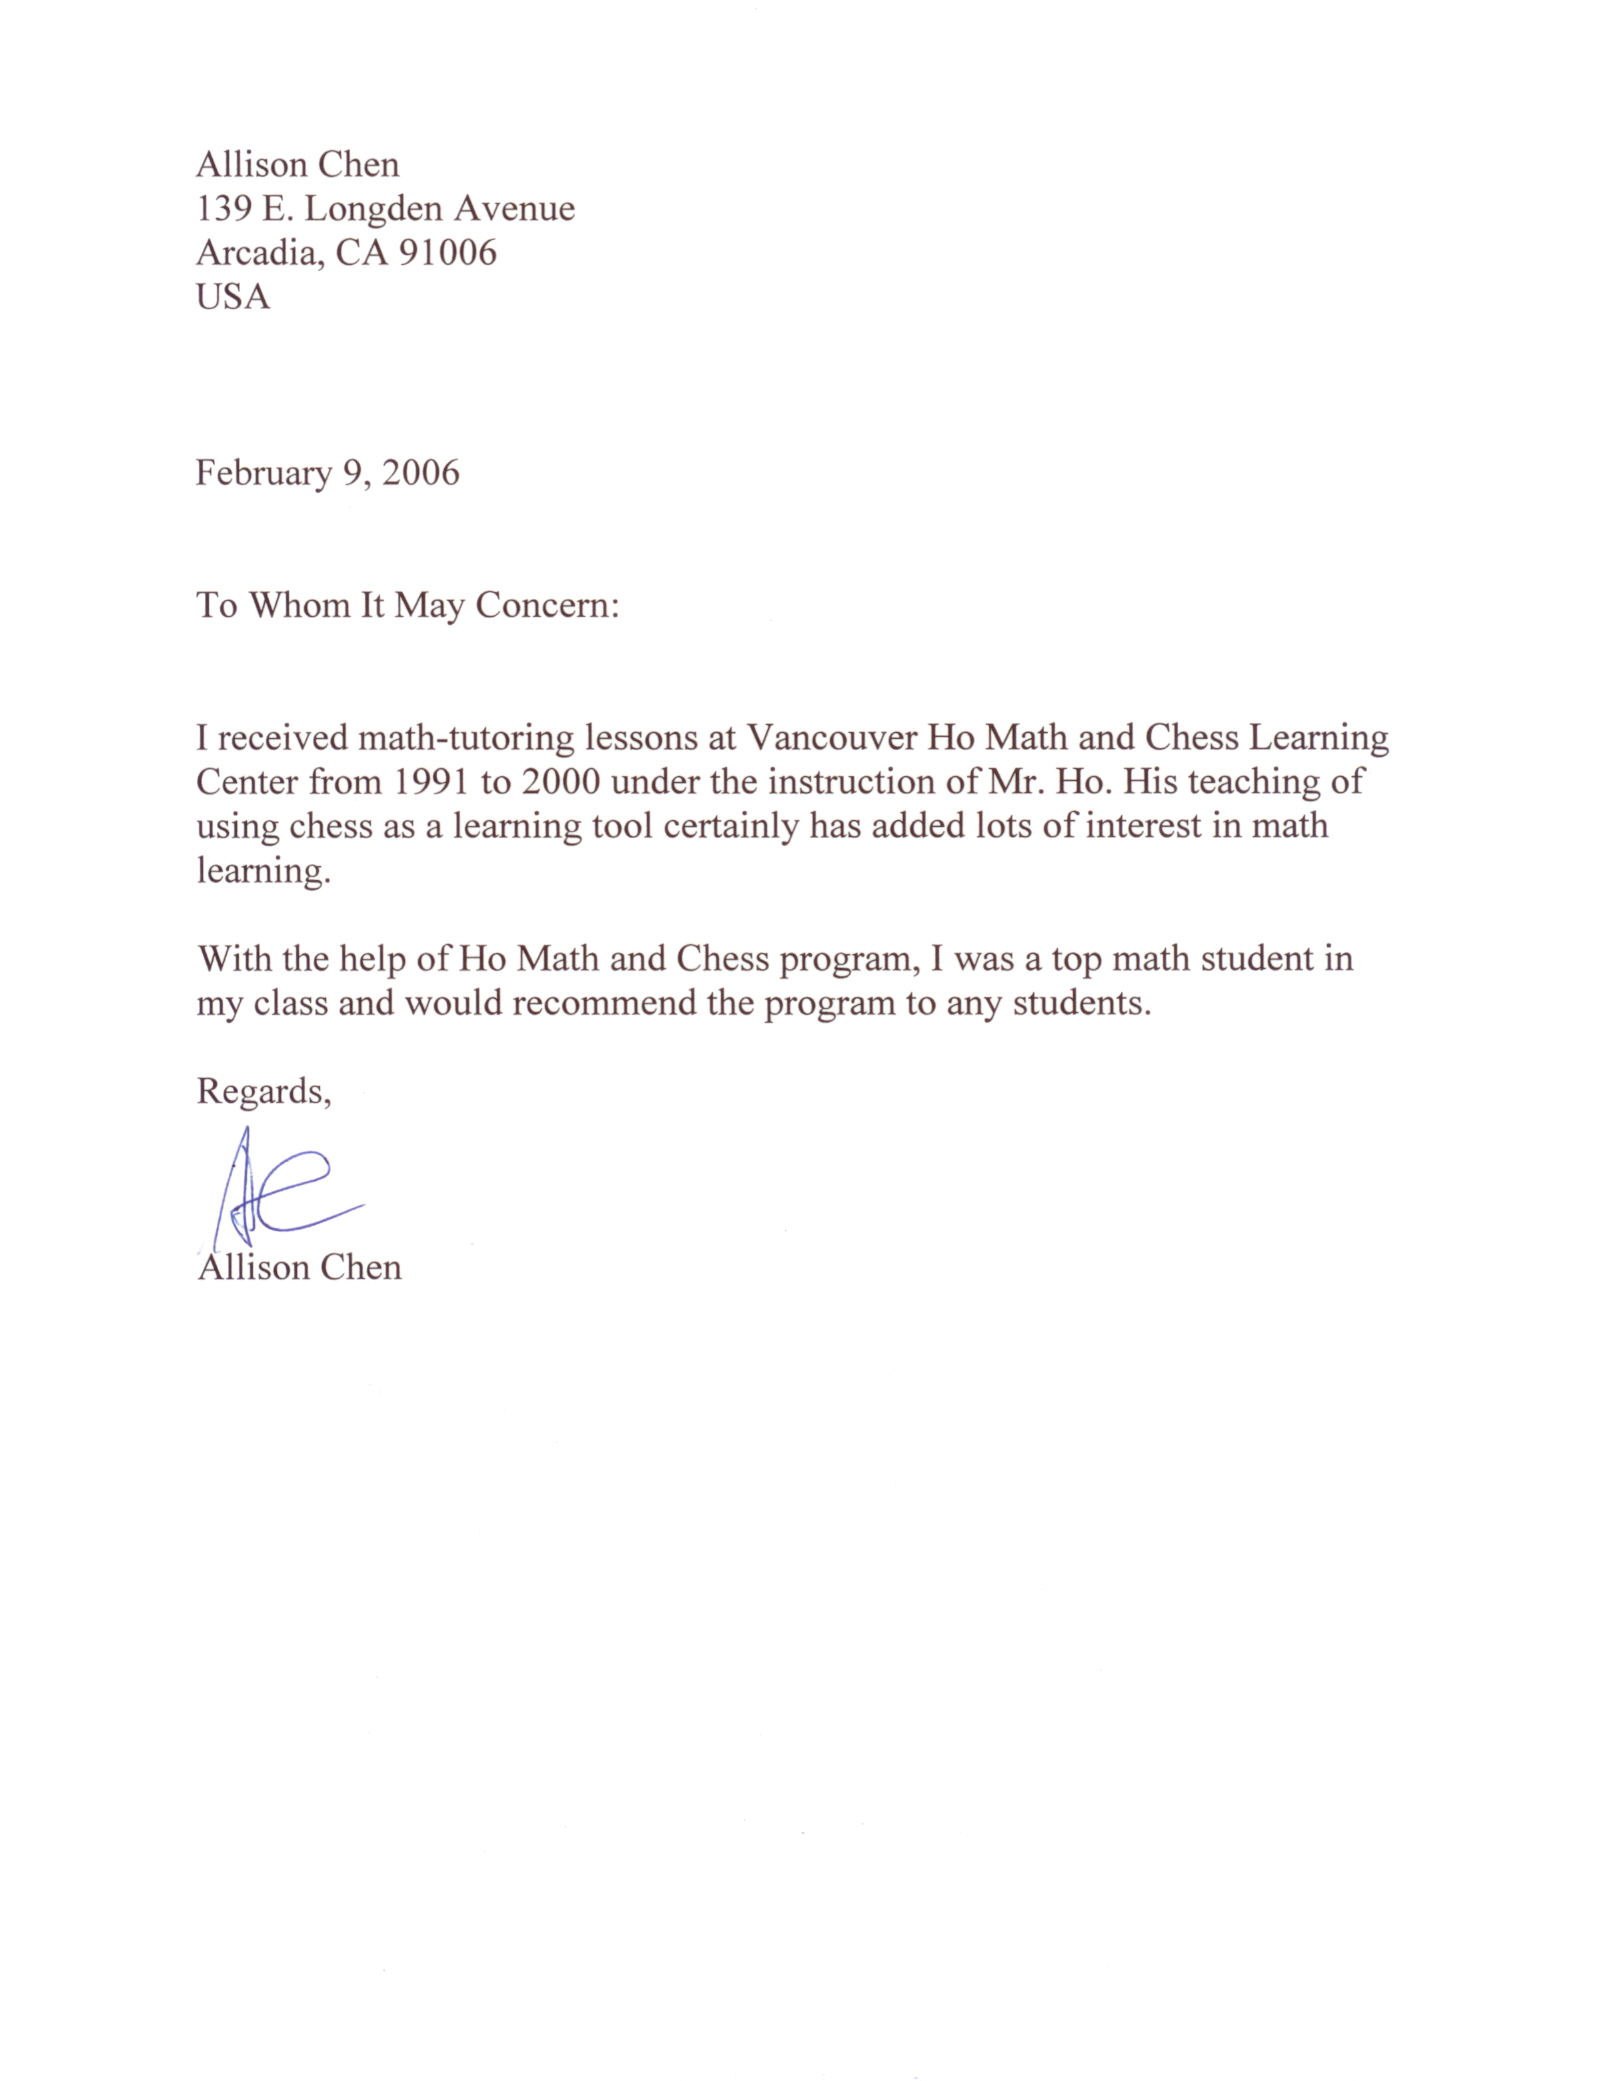 recommendation letter sample for math teacher professional recommendation letter sample for math teacher sample recommendation letter from a teacher thoughtco sample recommendation letter